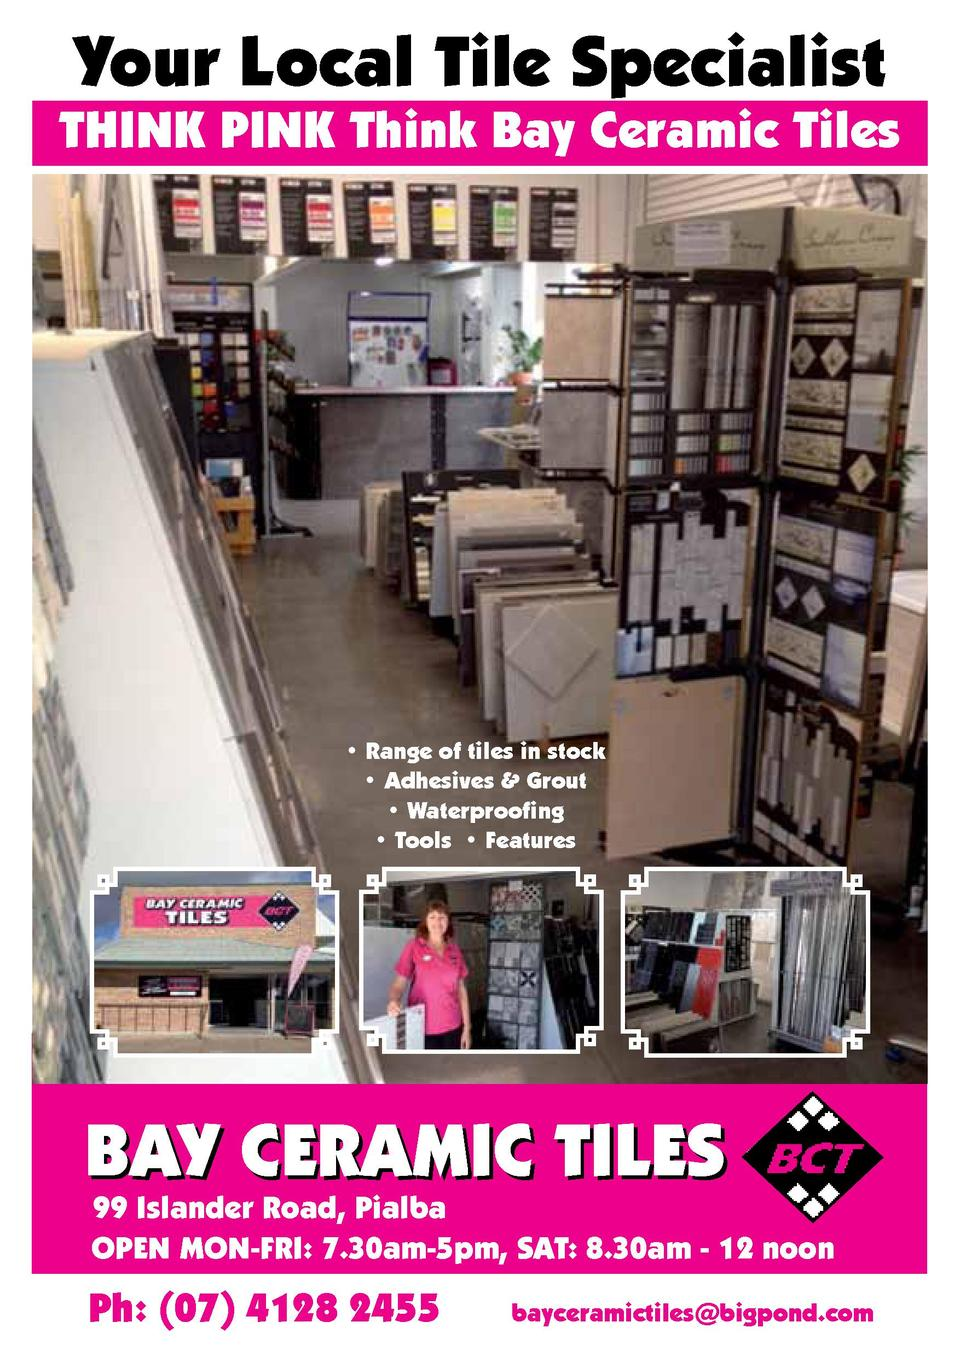 Your Local Tile Specialist  THINK PINK Think Bay Ceramic Tiles      Range of tiles in stock     Adhesives   Grout     Wate...